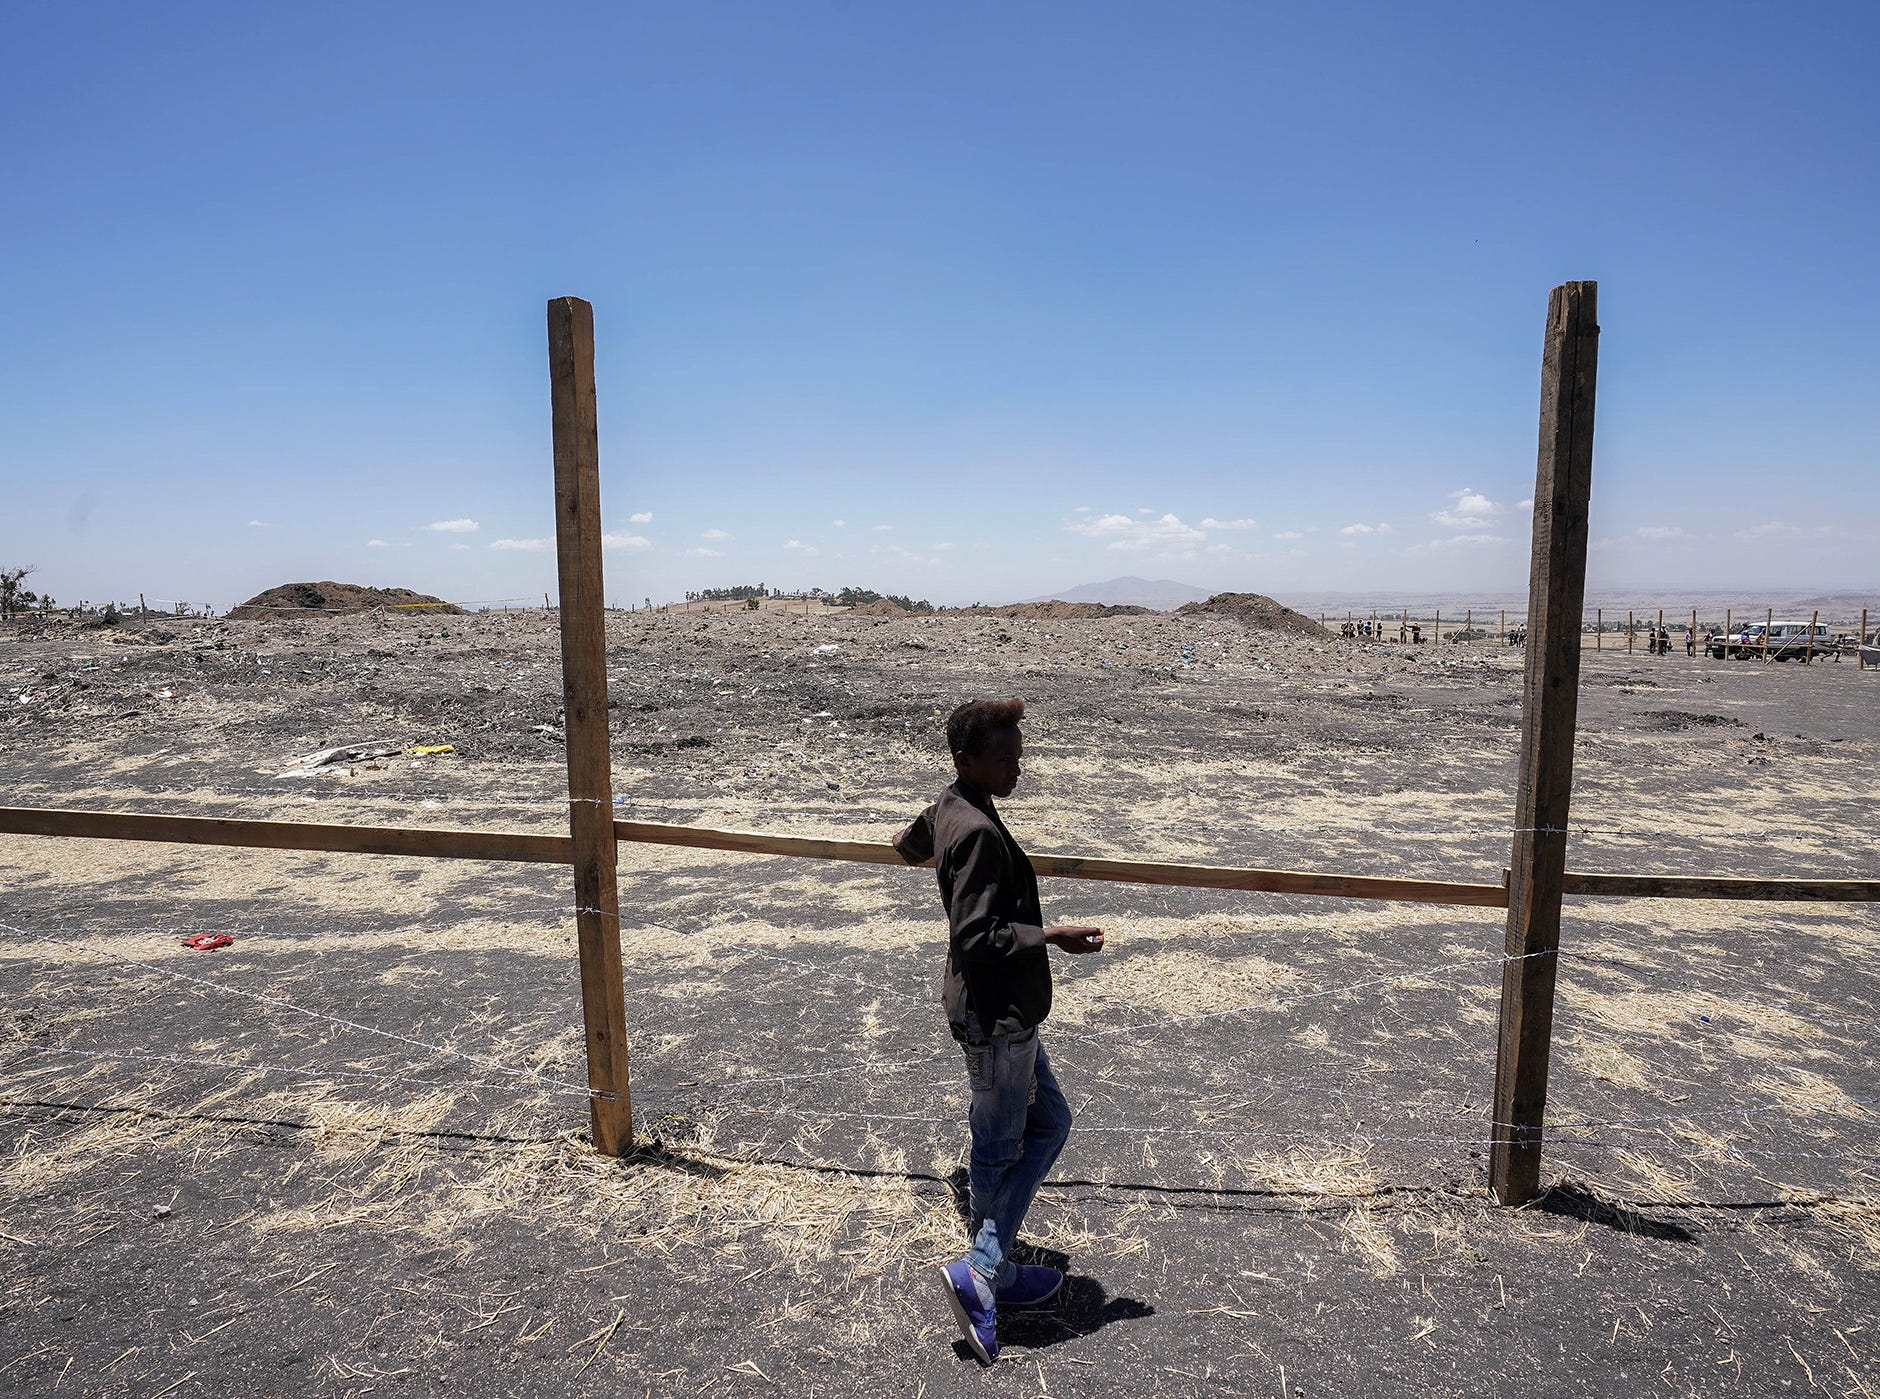 A young boy stands at the fence around the crash site of Ethiopian Airlines Flight 302 during the Asrahhullet or Tulluferra ceremony on March 21, 2019 in Ejere, Ethiopia.